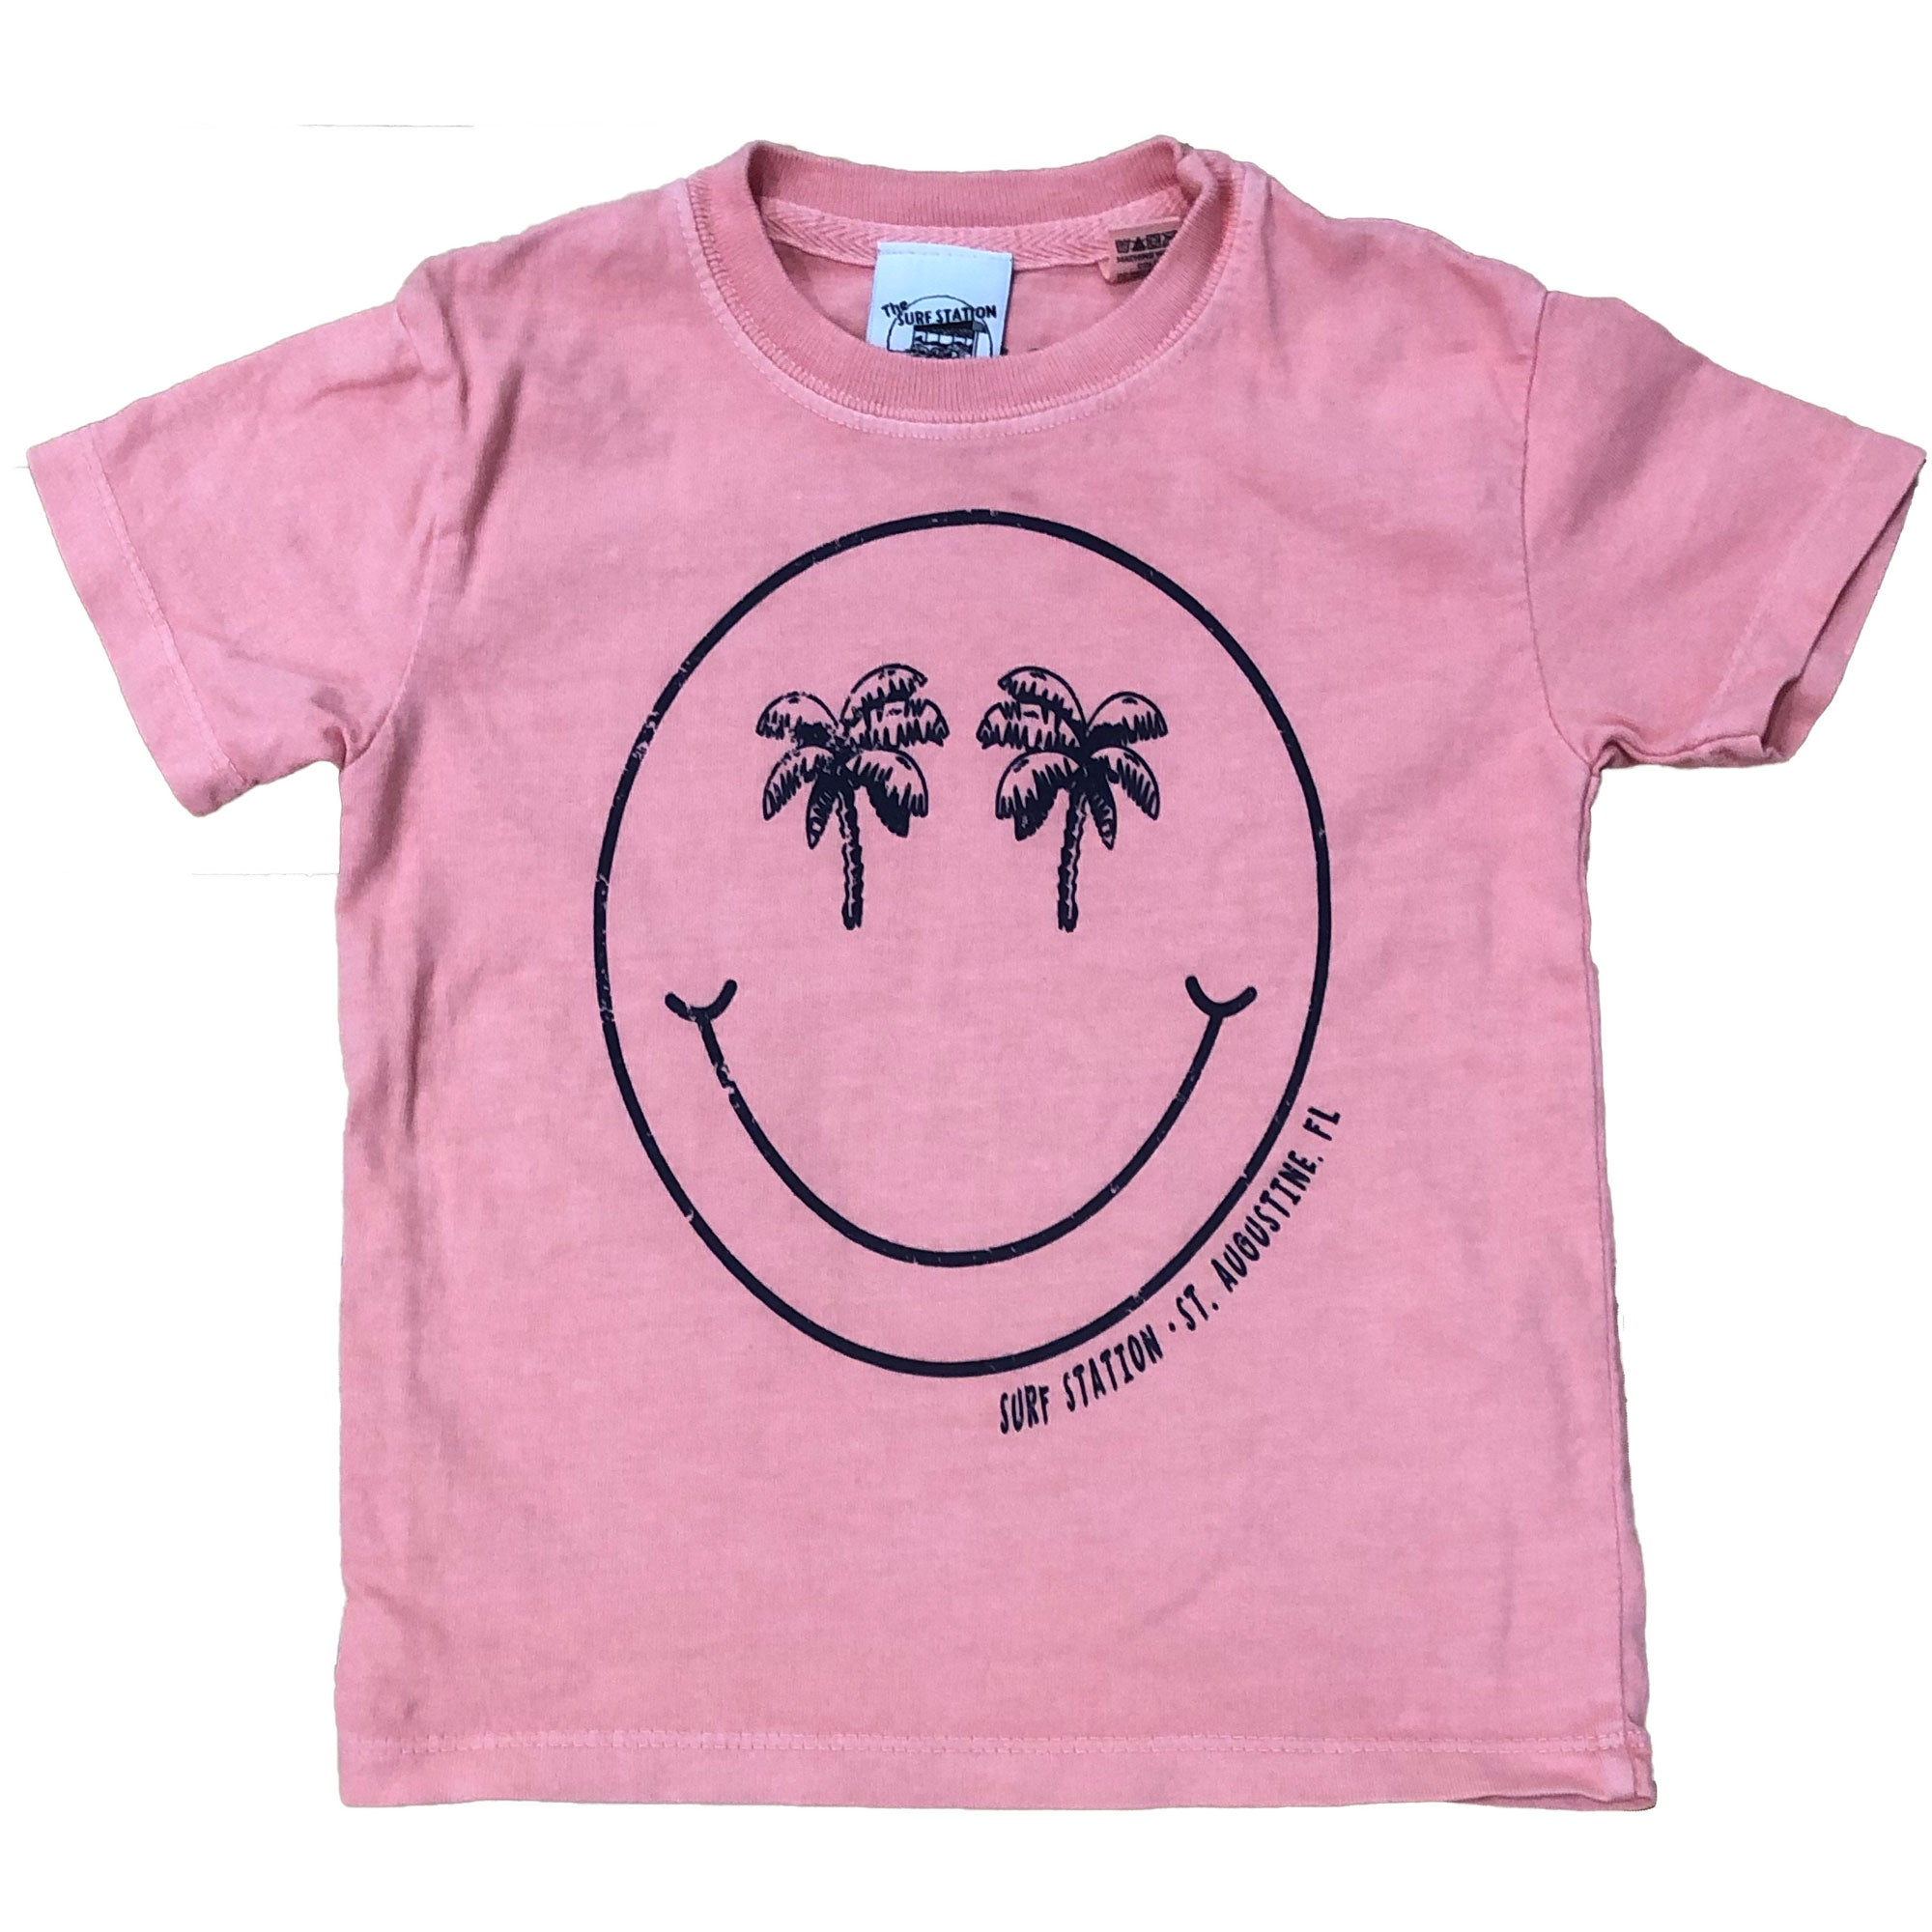 Surf Station Palm Smile Toddler S/S T-Shirt